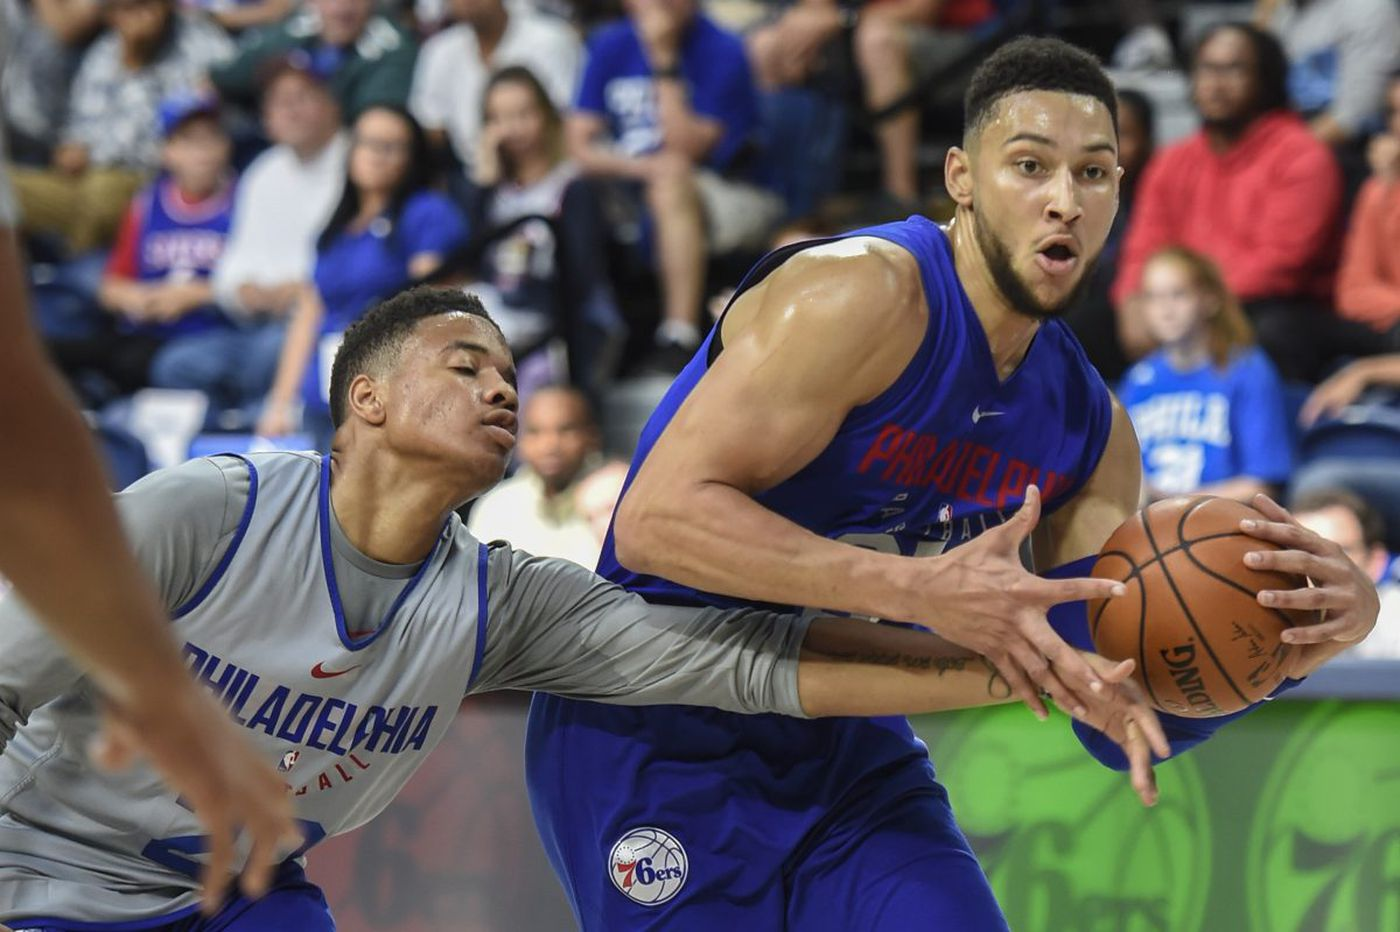 Ben Simmons dominates Sixers' 'Blue x White' scrimmage